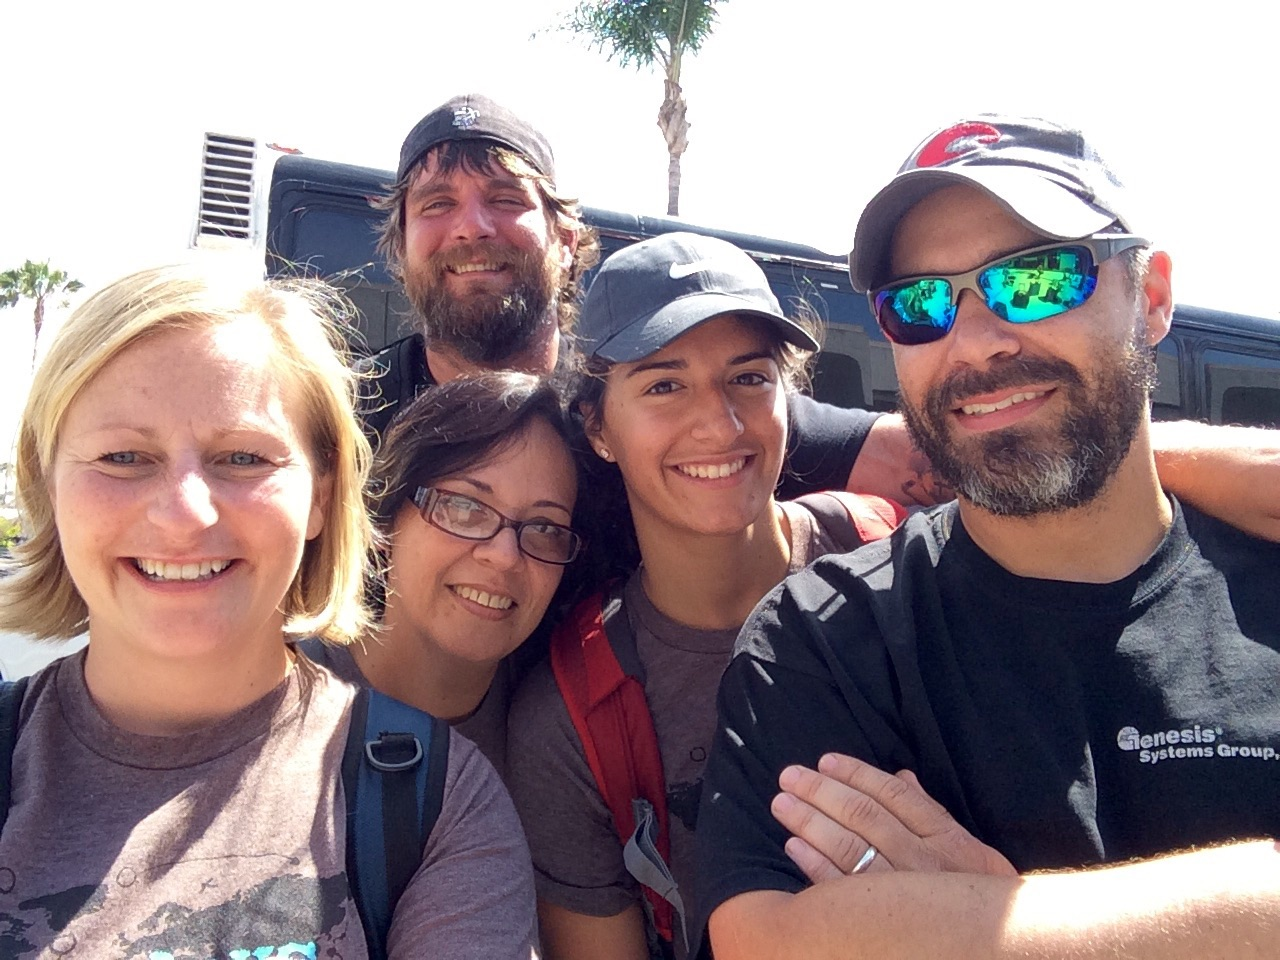 Again, on behalf of the team from In Focus Church, thank you for all you did to make this trip possible!